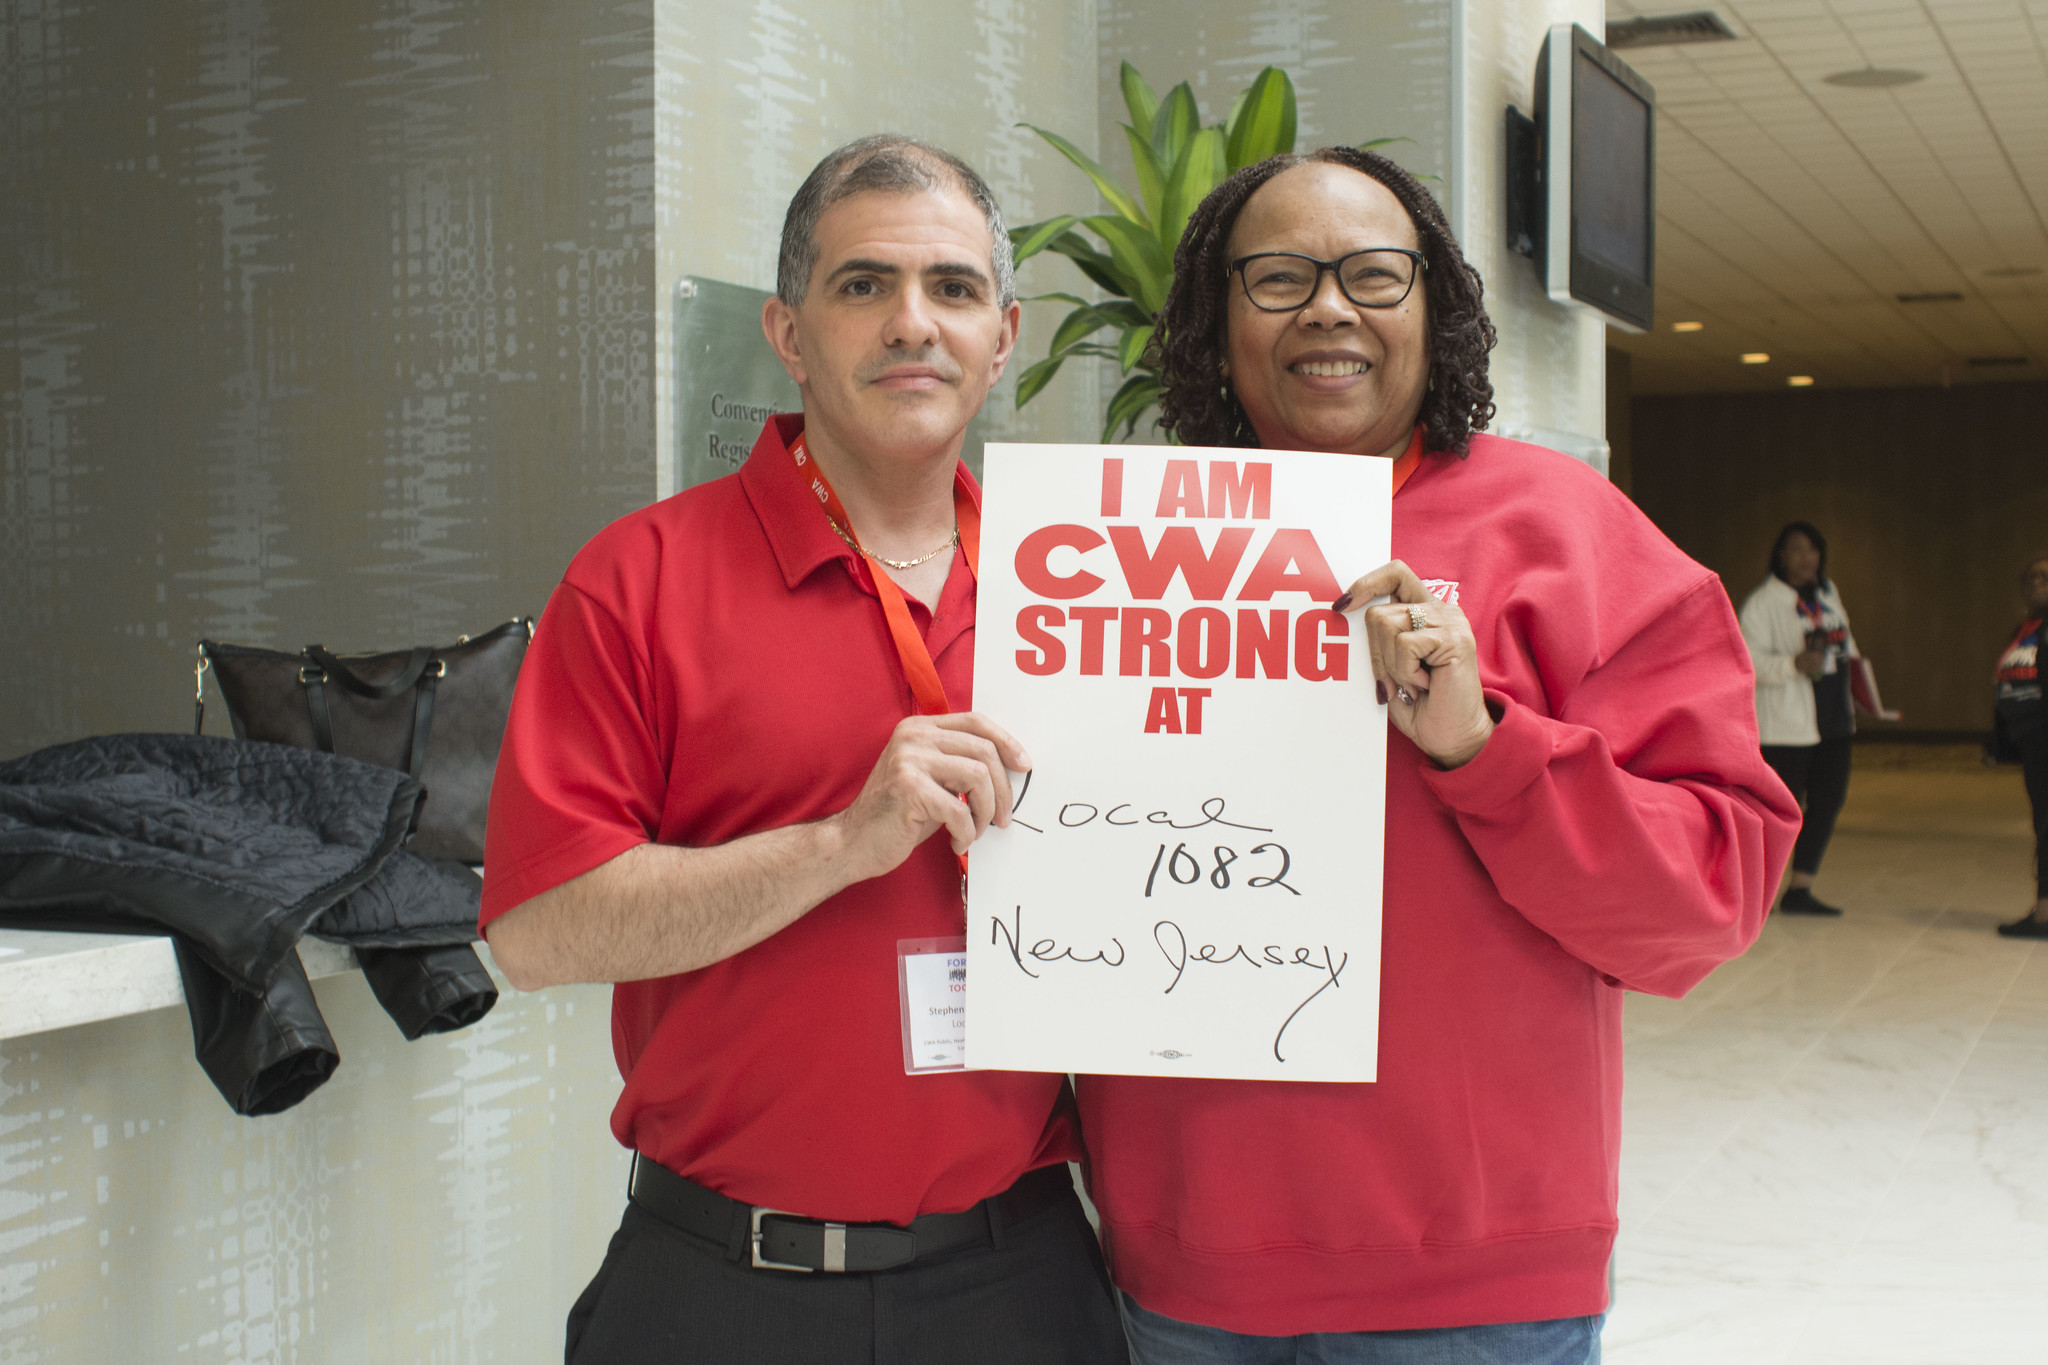 CWA STRONG at Public, Healthcare & Education Workers Conference